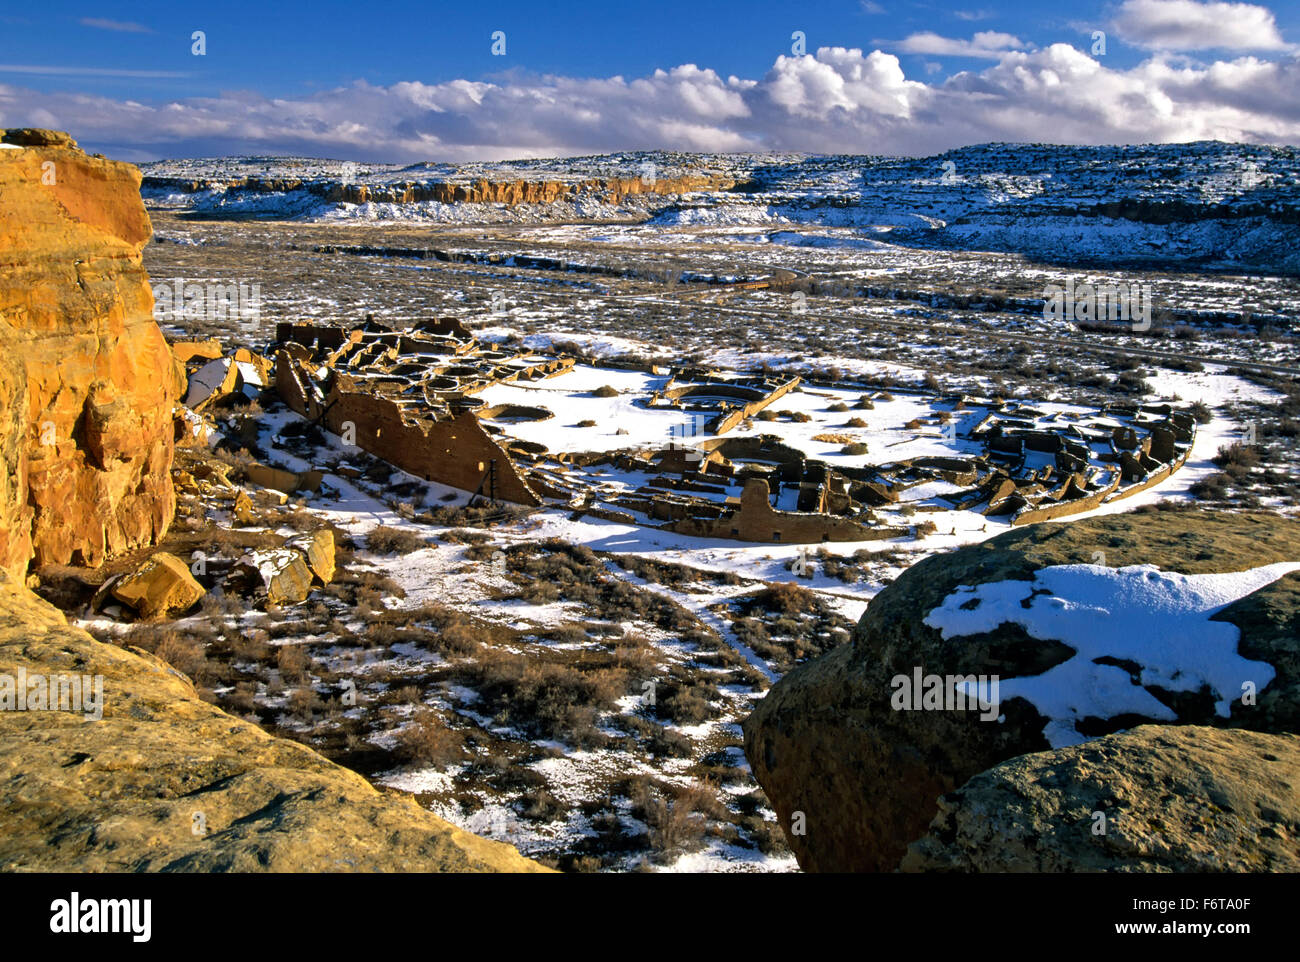 Aerial view of Pueblo Bonito under snow, Chaco Culture National Historic Park, New Mexico USA - Stock Image